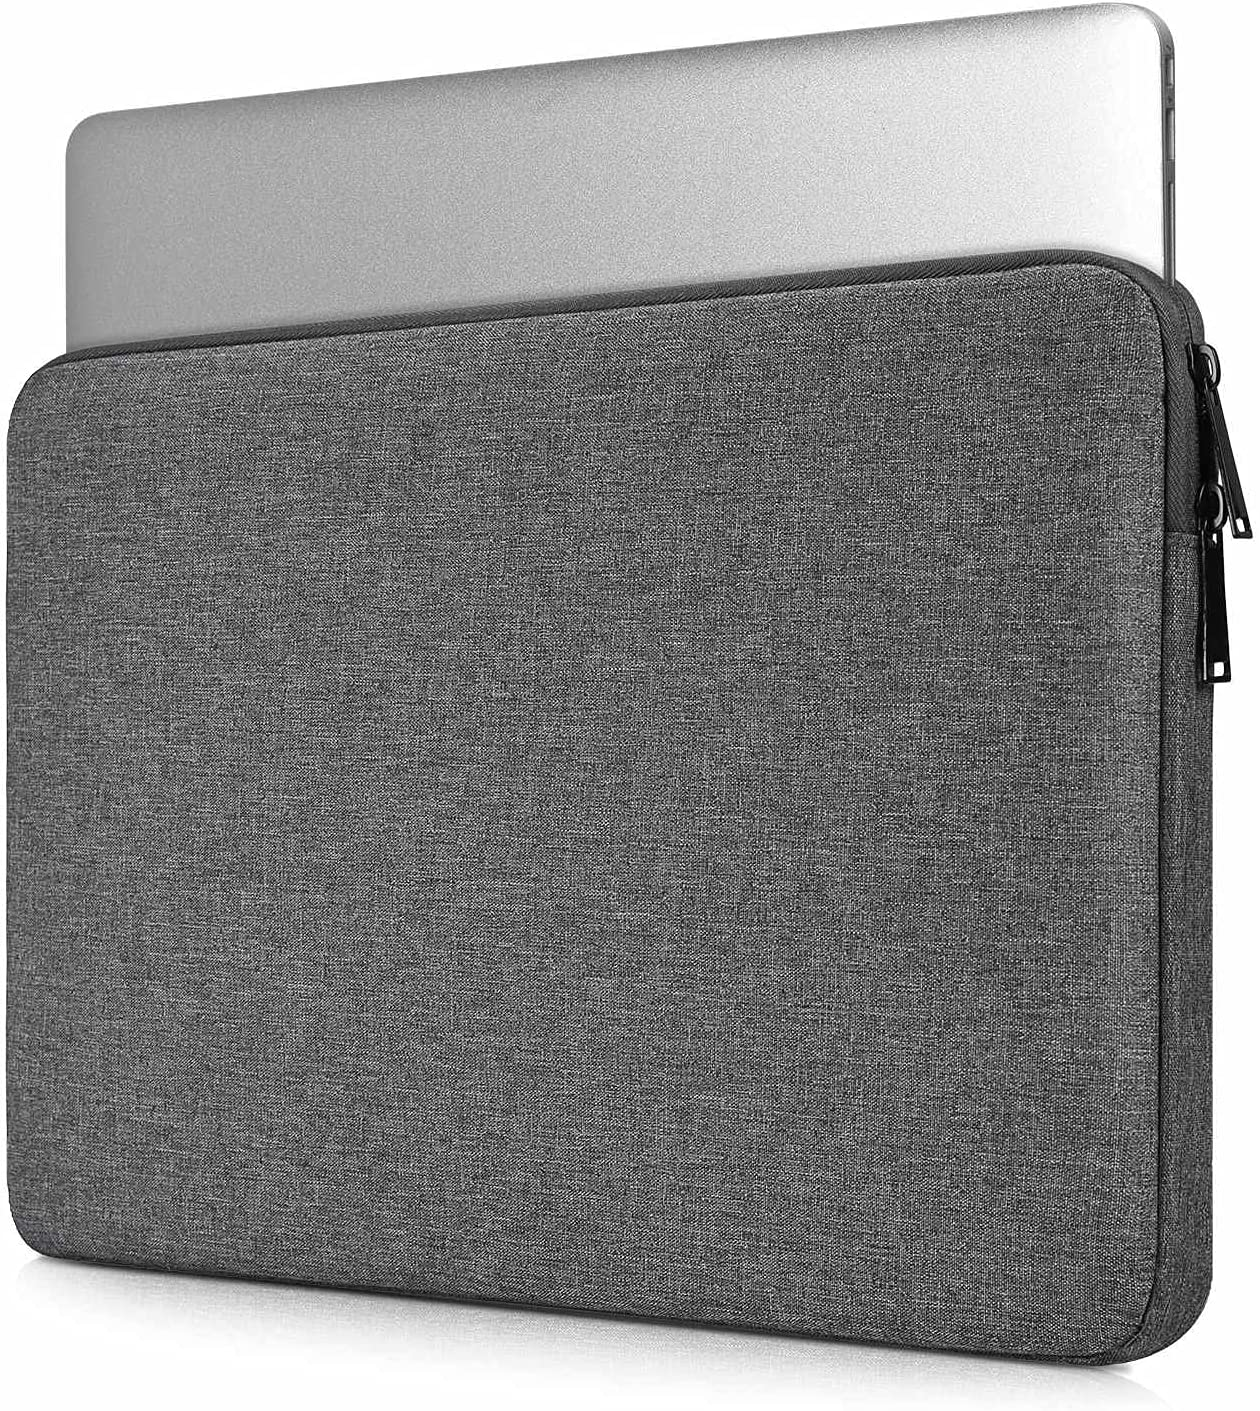 15.6 Inch Waterproof Laptop Case for Dell Inspiron 15 3000/ Dell Gaming G3, Asus Vivobook F512JA 15.6, HP Pavilion 15.6 and Lenovo Samsung Acer Laptop Chromebook Bag(Space Grey)